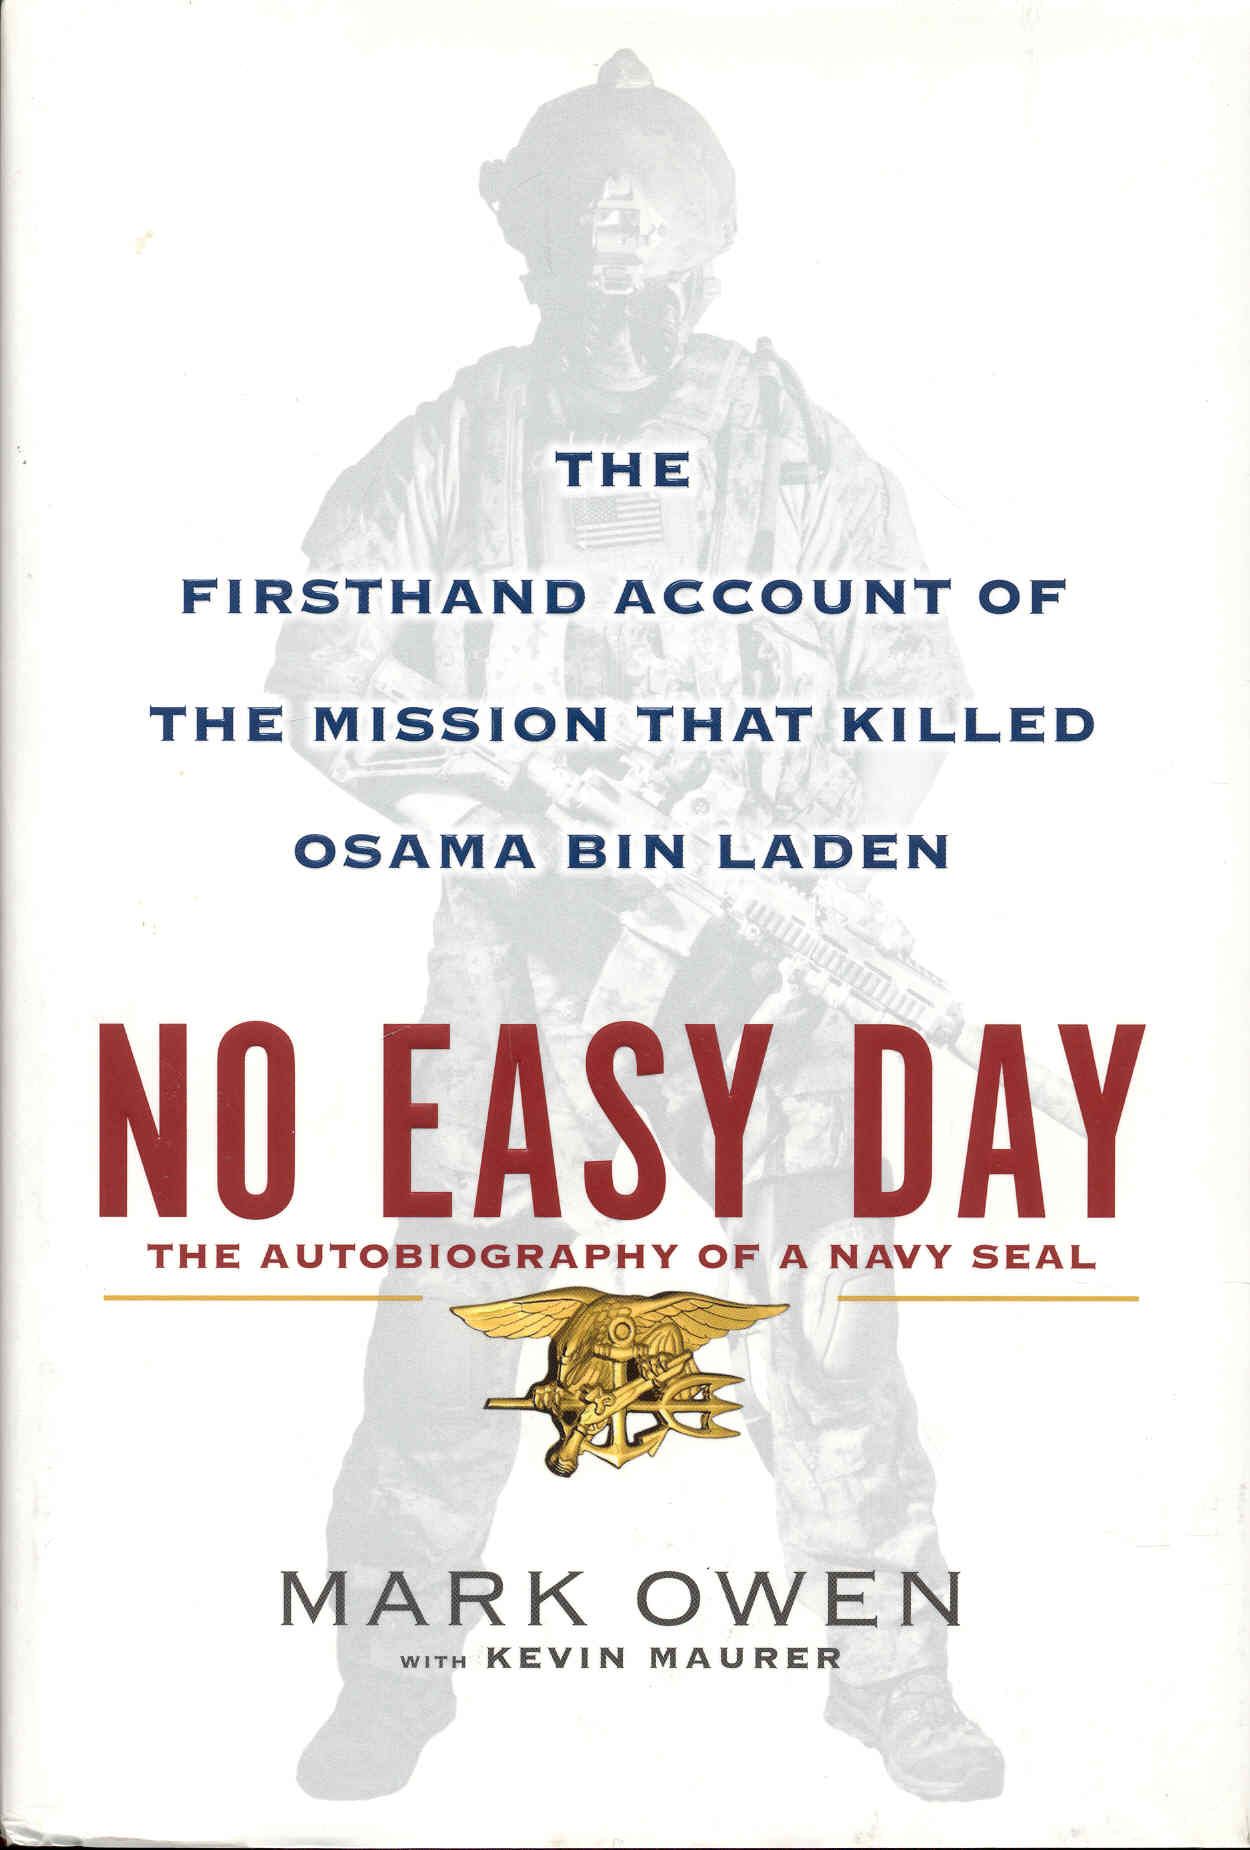 Image for No Easy Day: The Autobiography of a Navy Seal (The Firsthand Account of the Mission That Killed Osama Bin Laden)